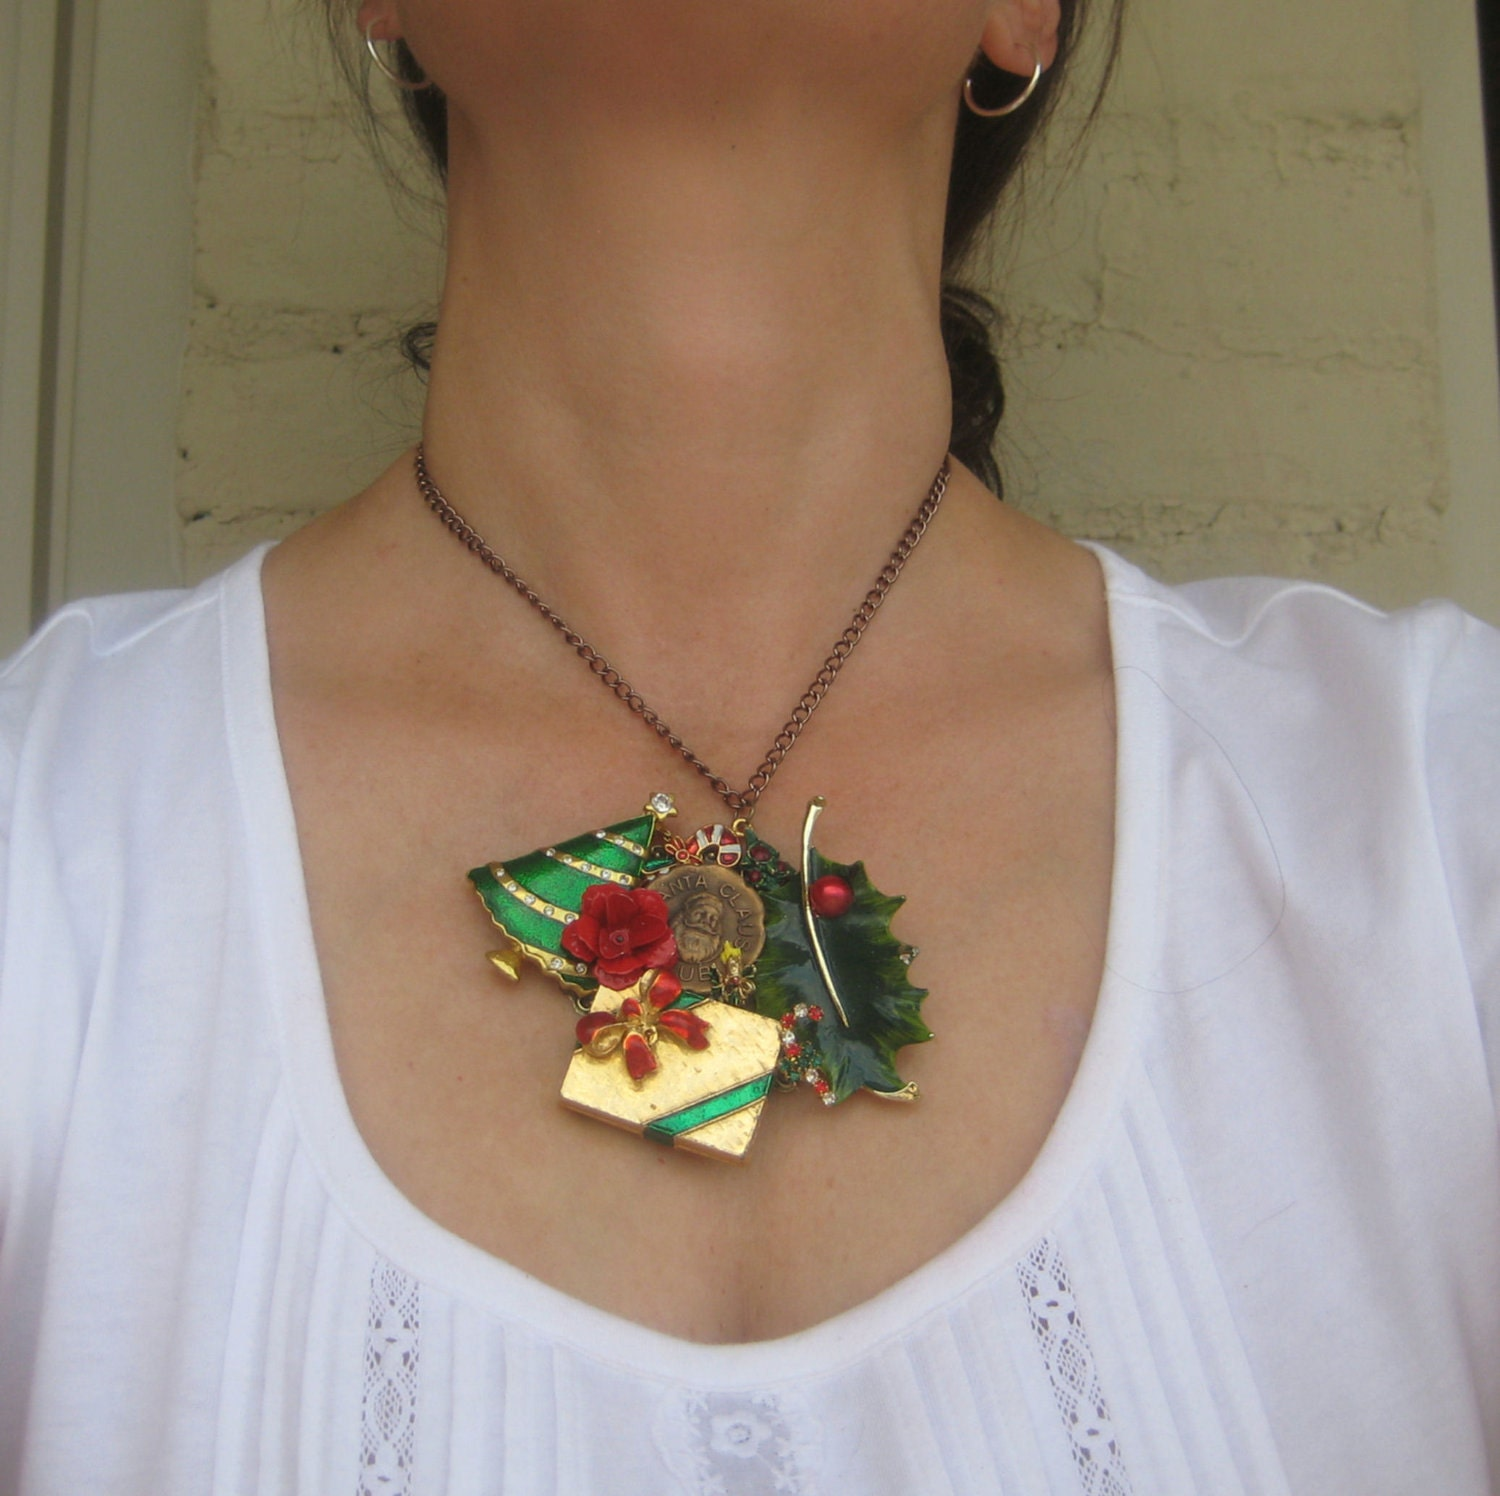 "Christmas Vintage Brooch Holiday Charm Necklace Collage Upcycled OOAK ""Santa Claus Club"""